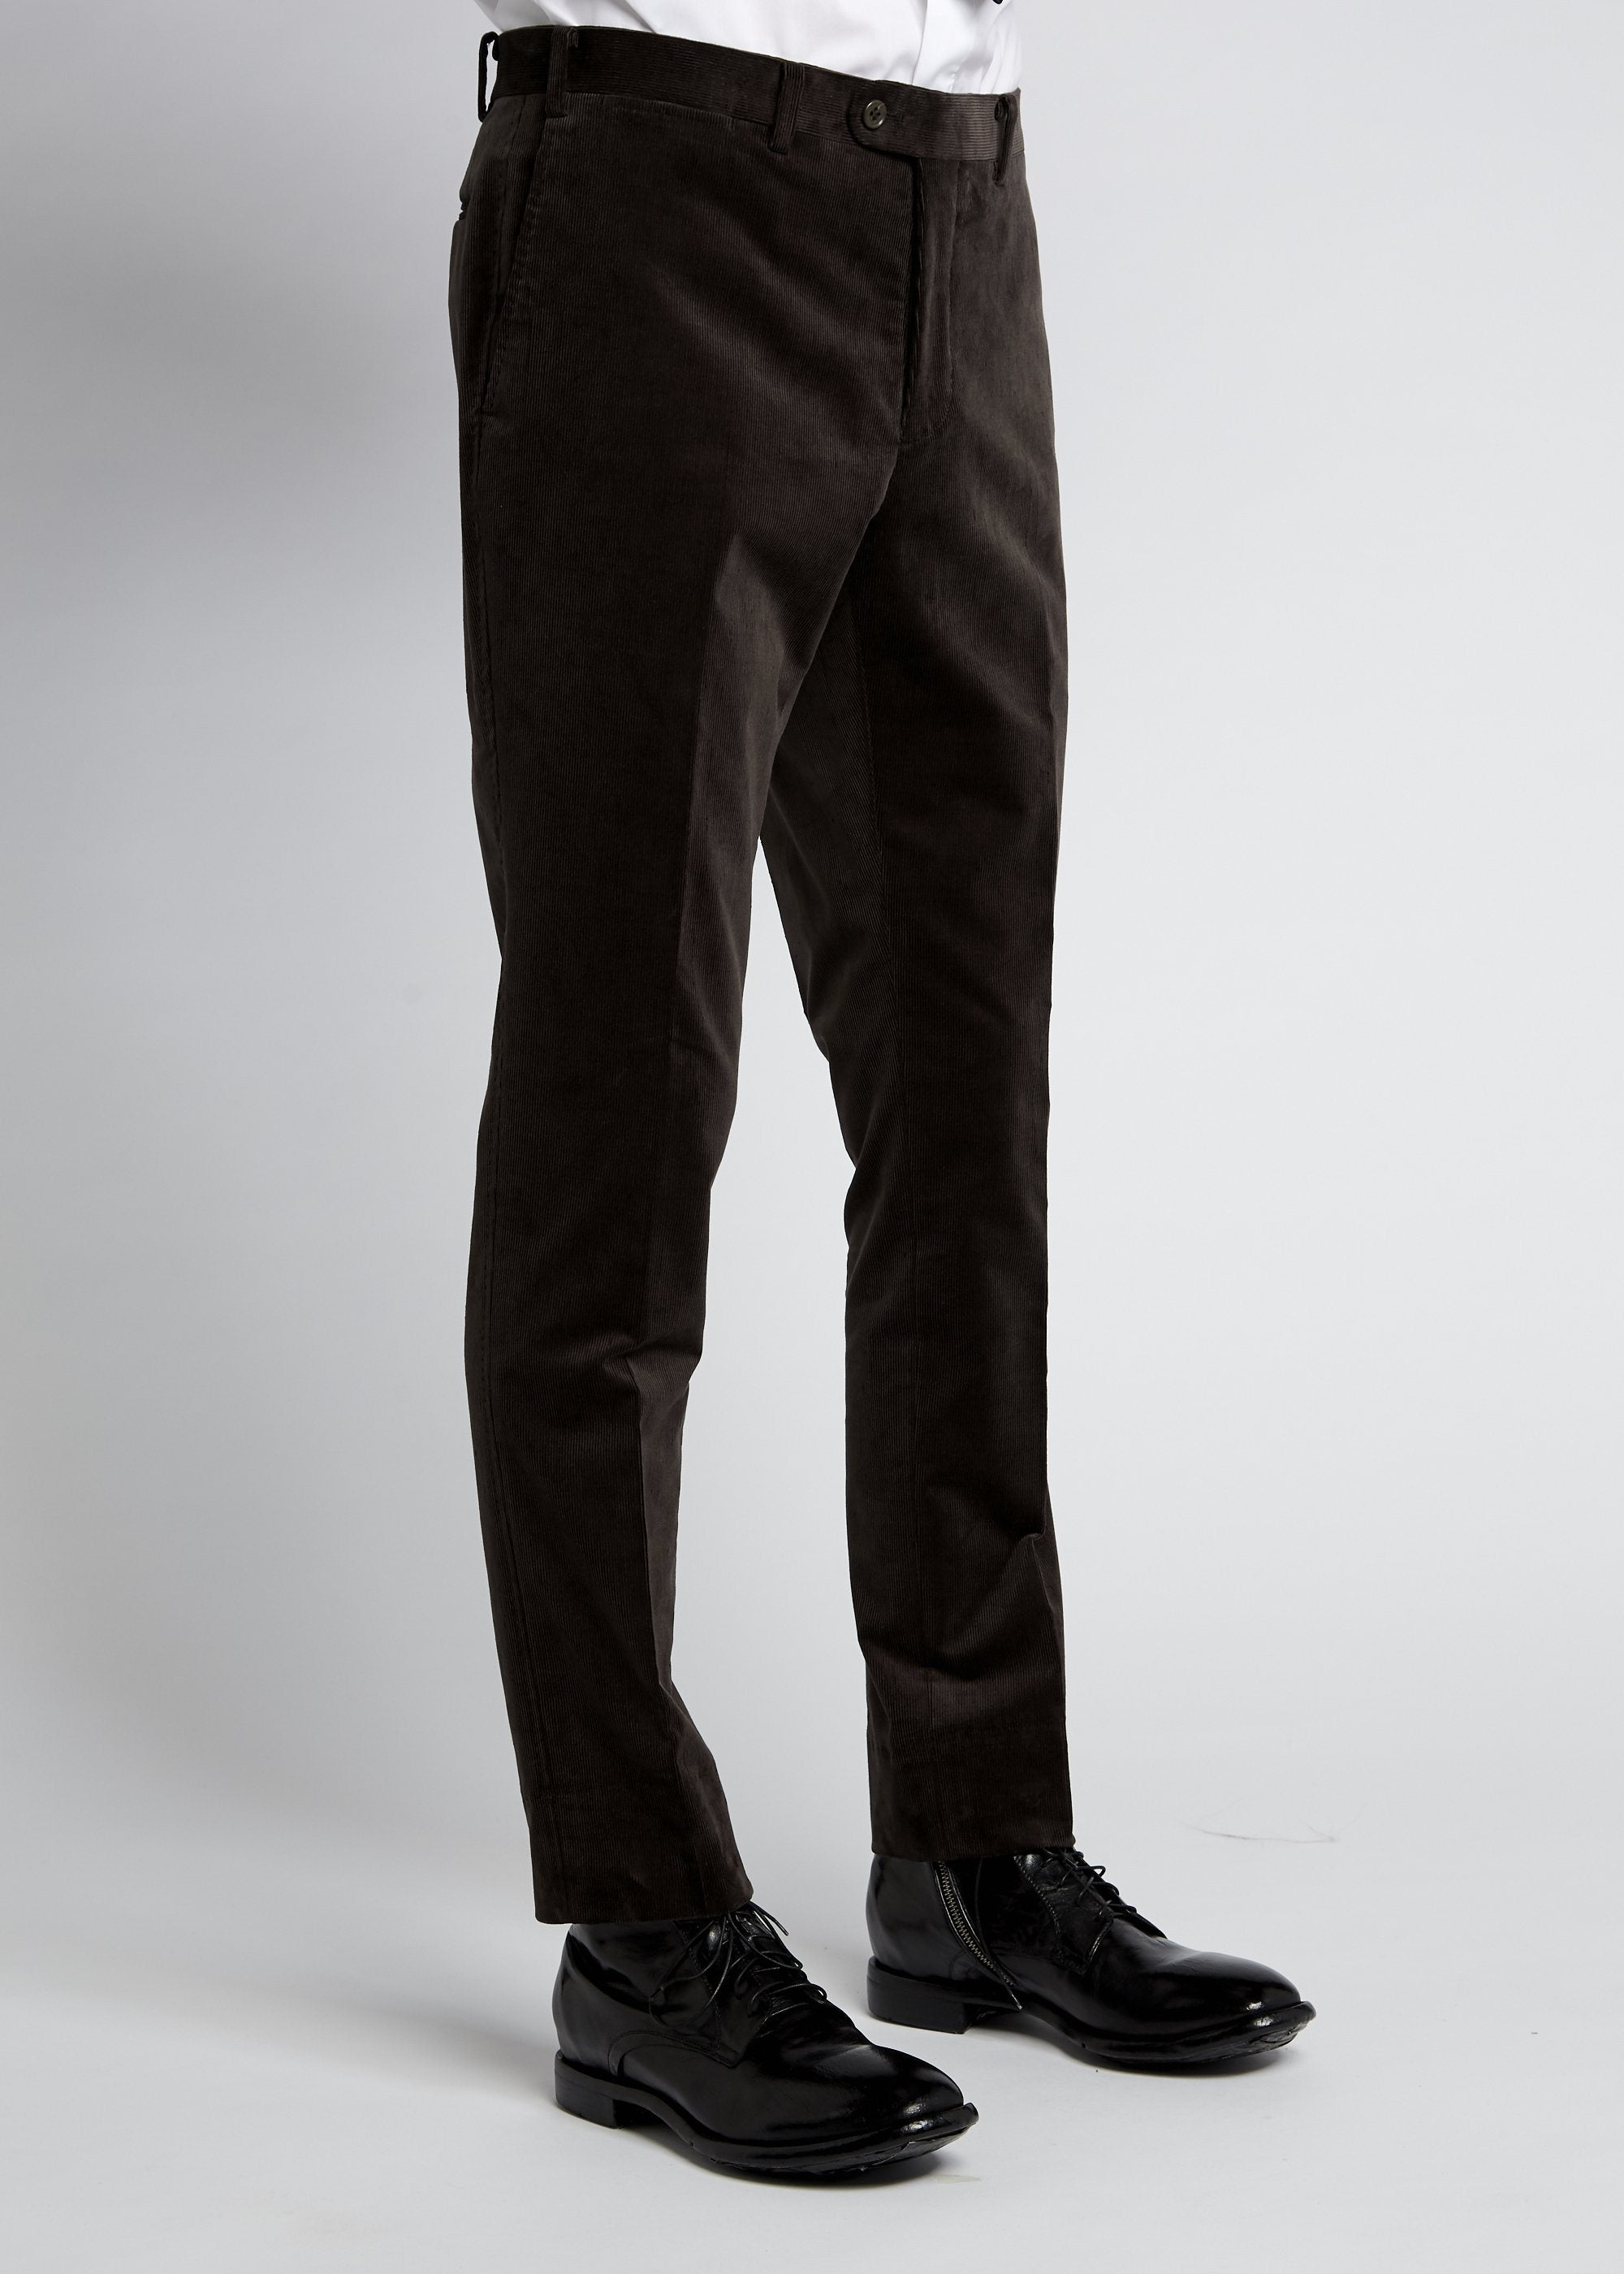 Xander Trouser - Brown Cord